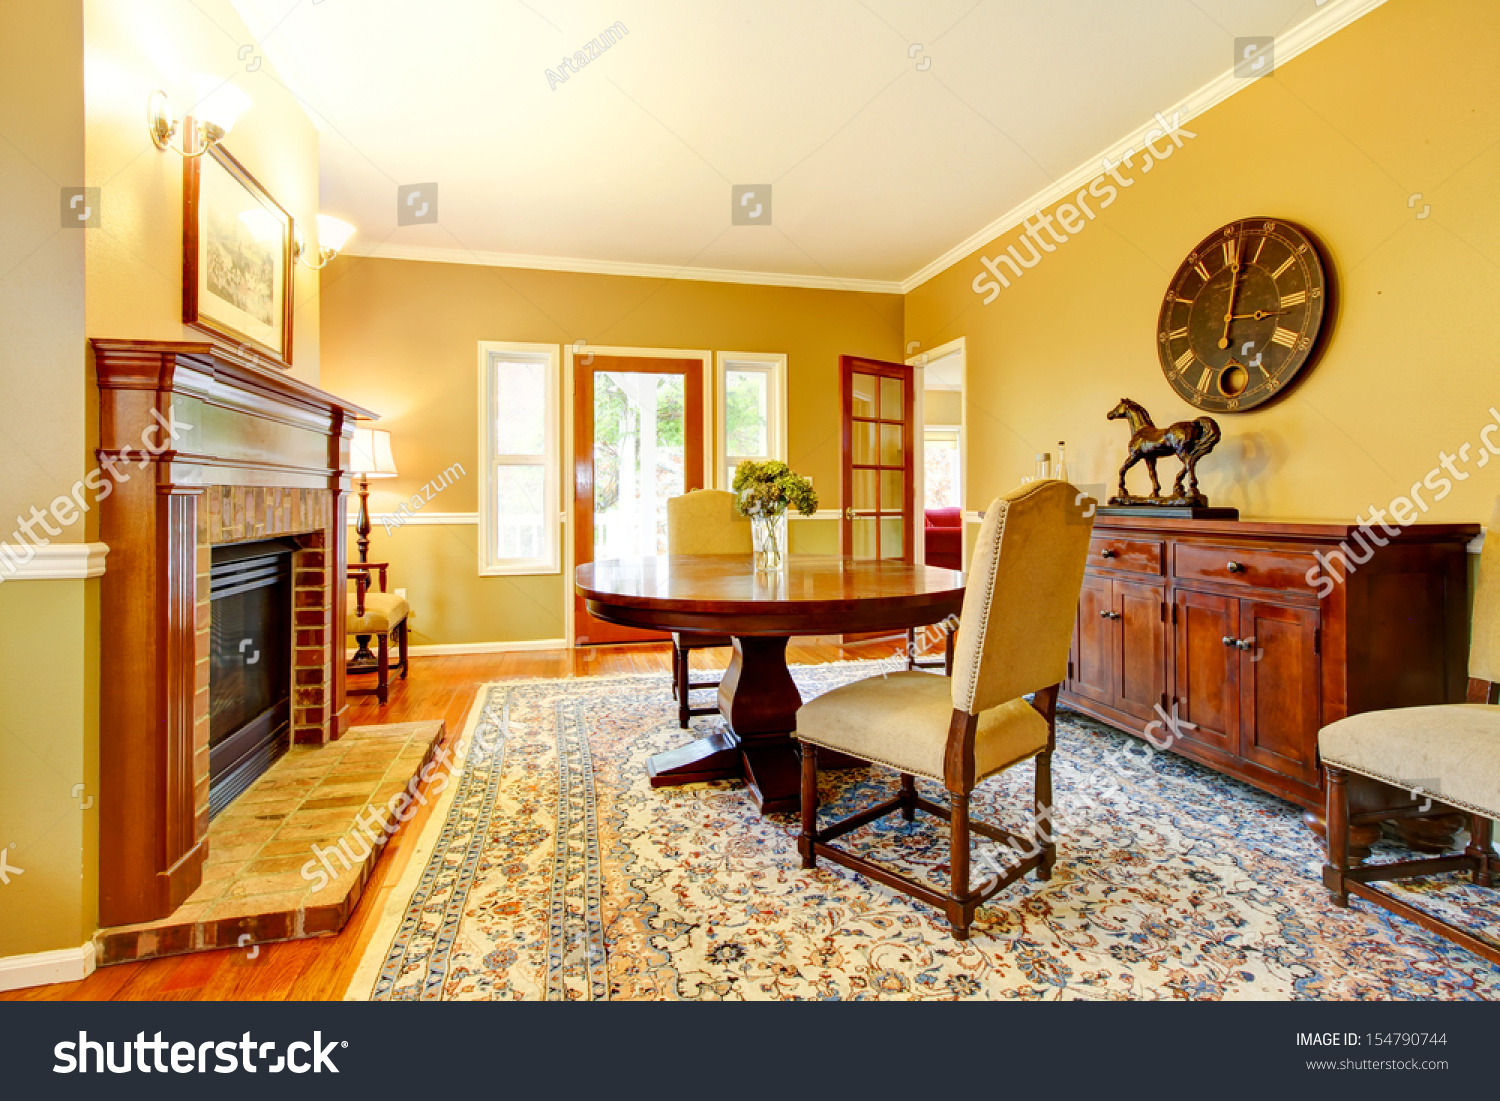 Living room fireplace mustard wall color stock photo for Mustard living room ideas